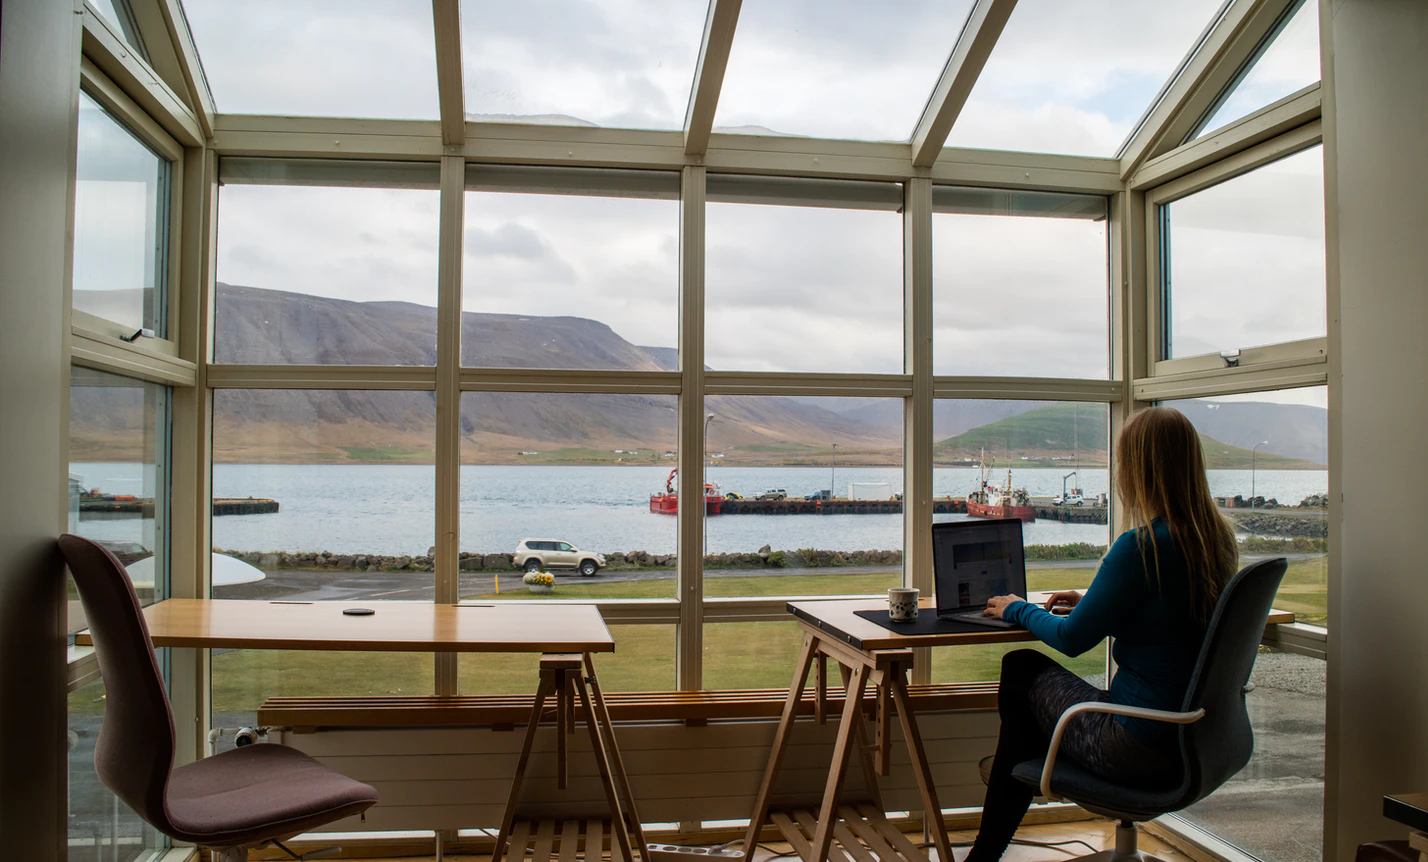 Women enjoying the view and the opportunity to work from anywhere